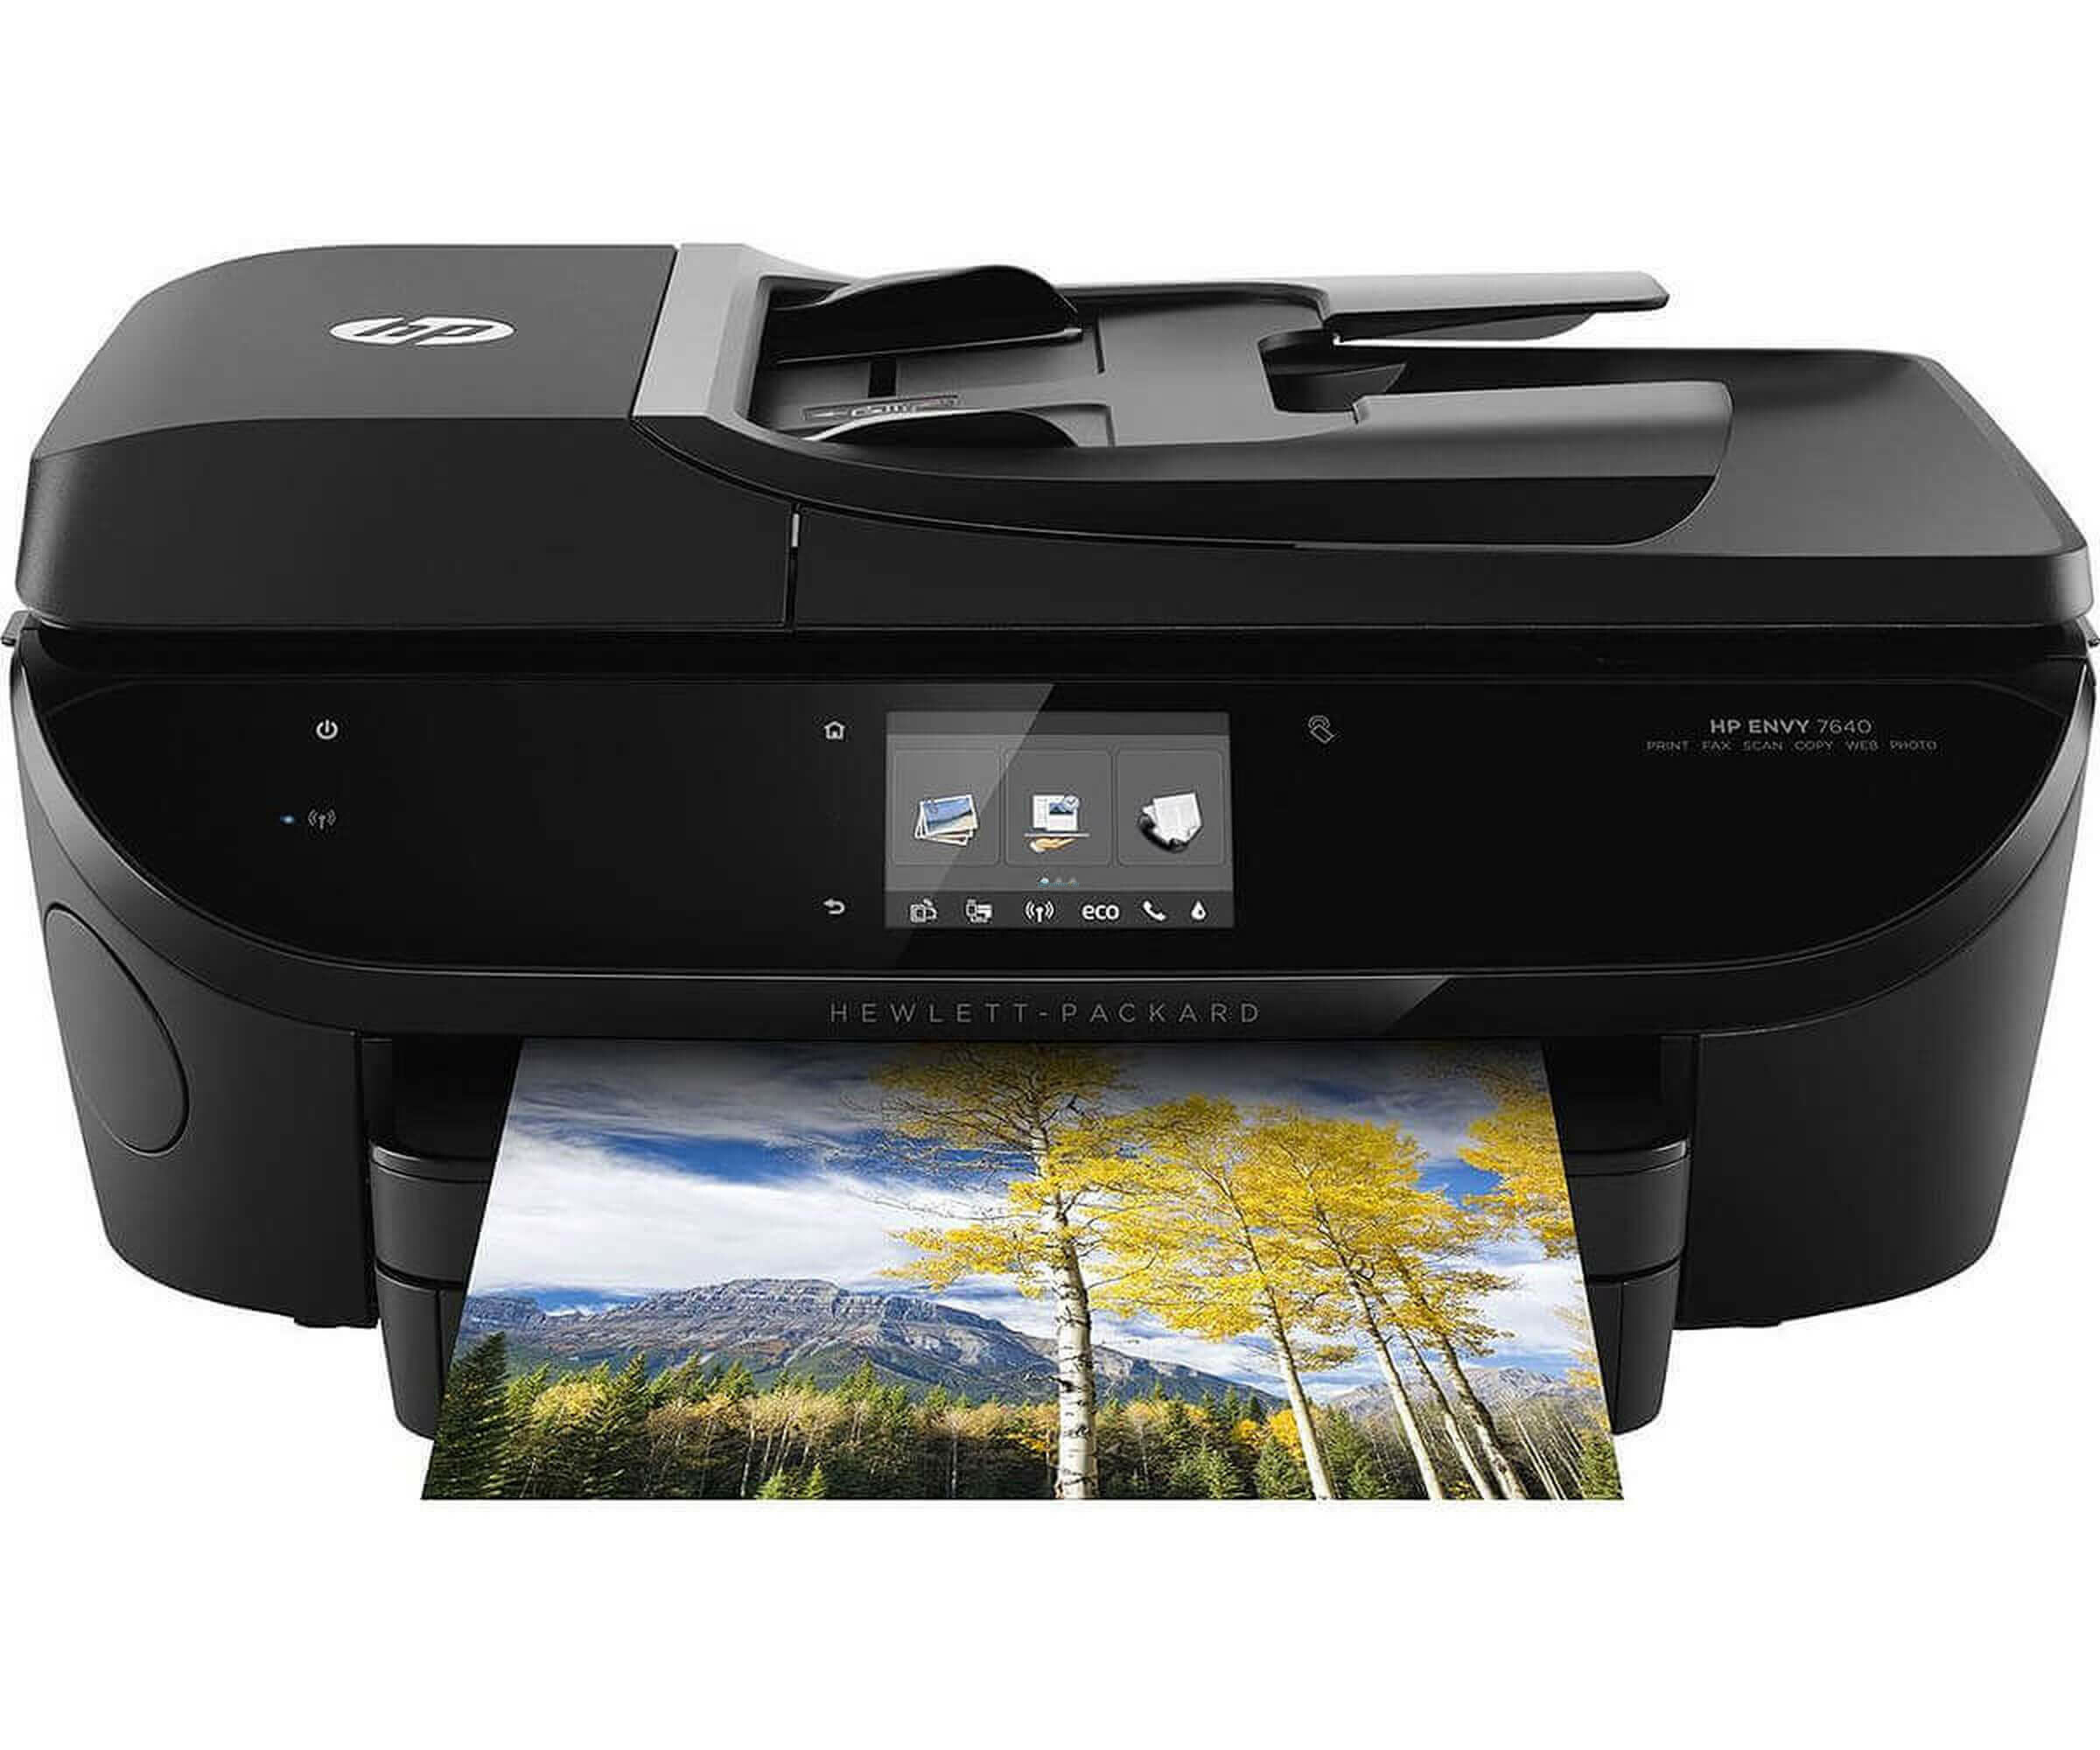 HP Envy 7640 e-All-in-One - E4W47A - Multifunktionsdrucker (Farbe) - Drucker - Kopierer - Scanner - Fax